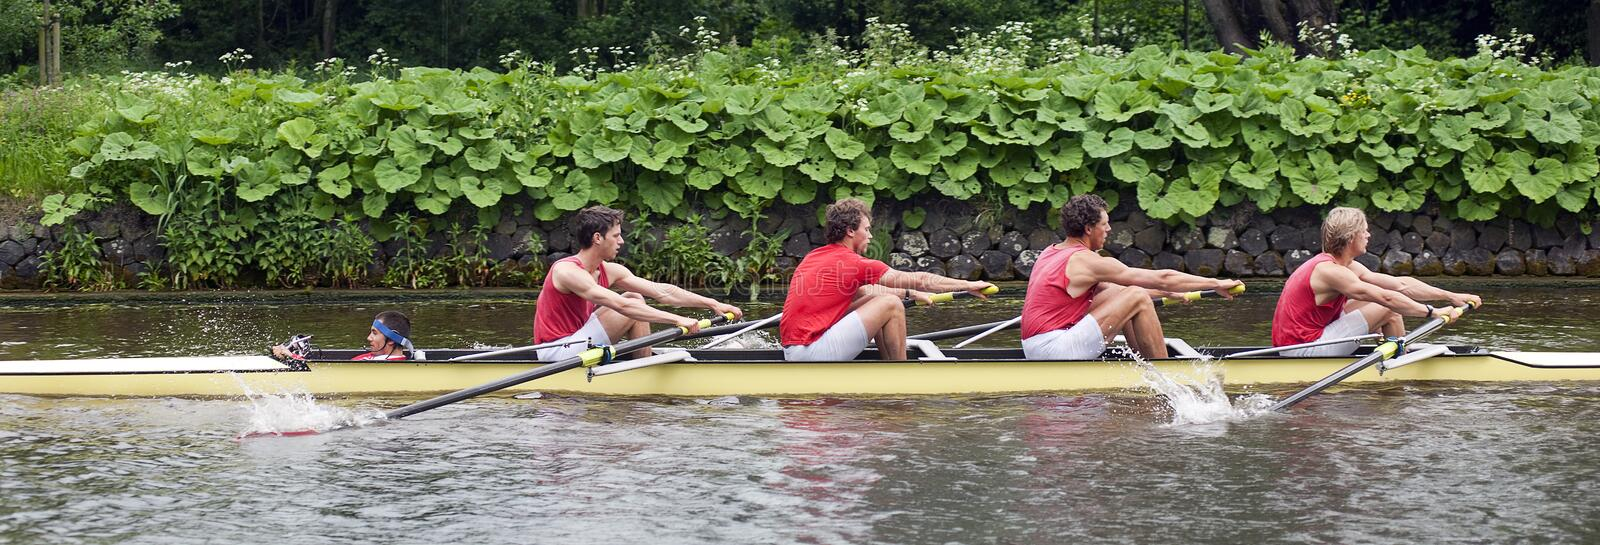 Coxed four on a canal royalty free stock photography